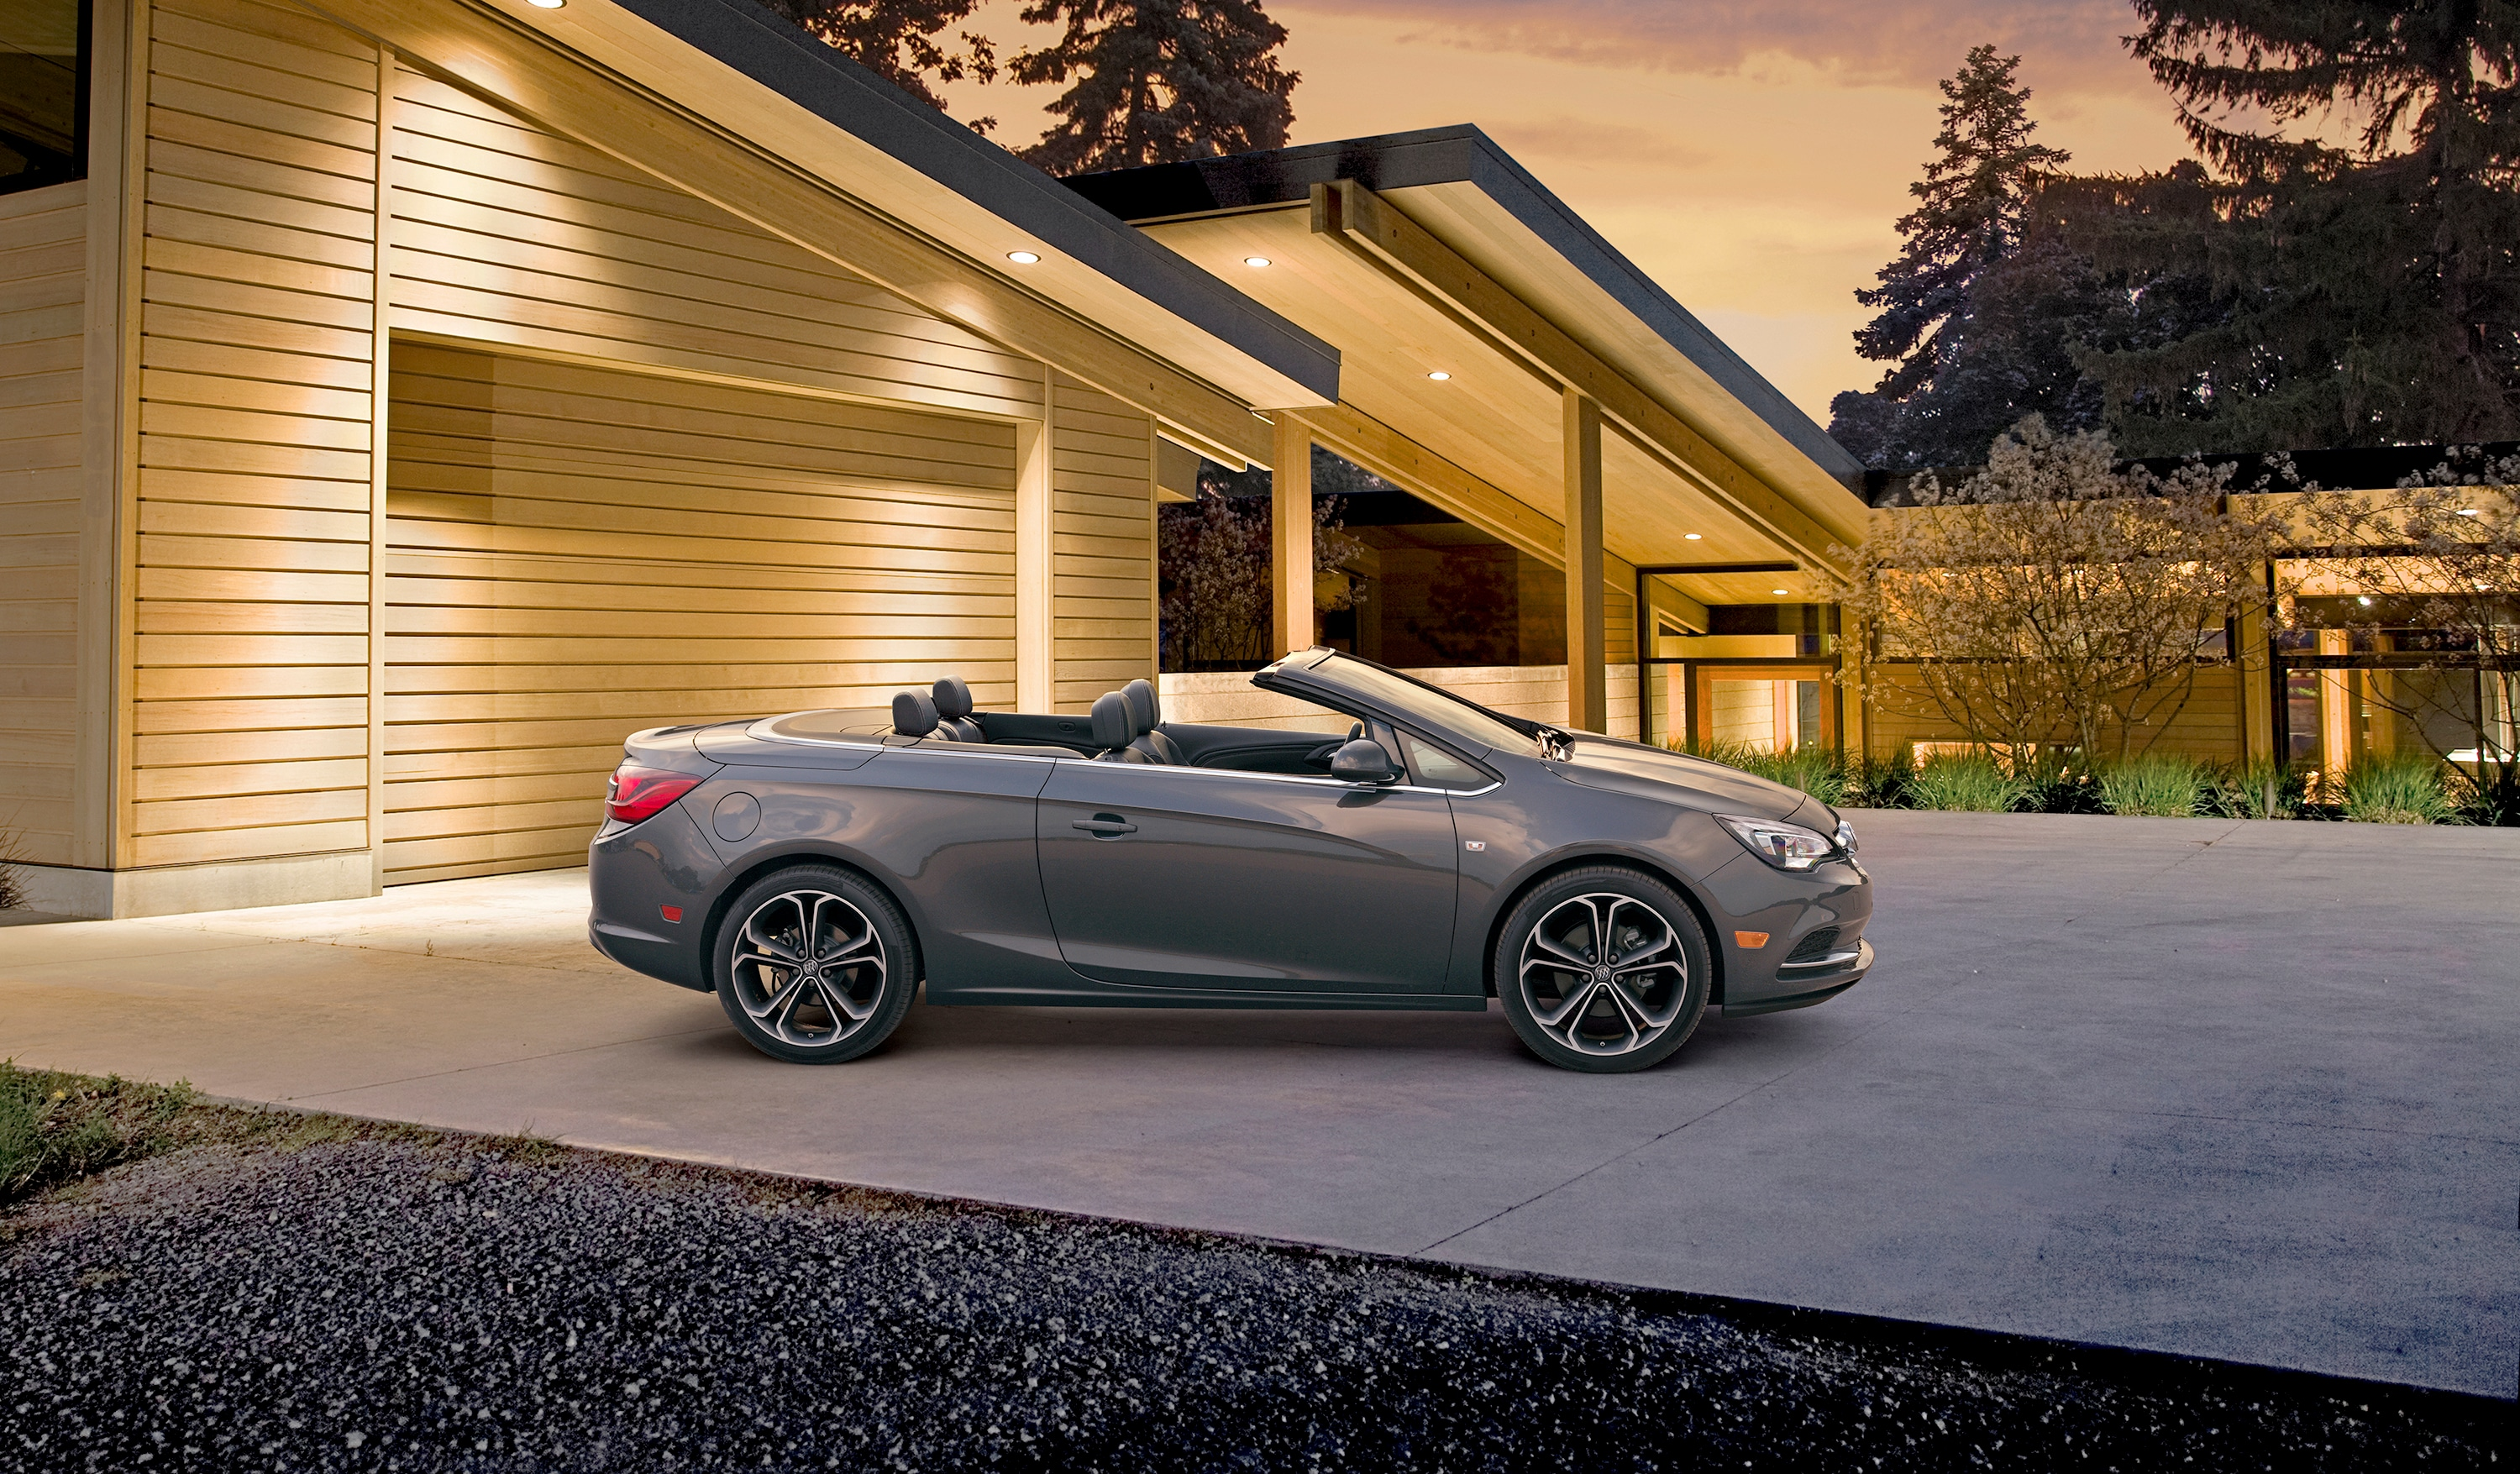 luxury news buick cheap dealer me unique and owned hub car thompsons gmc near dealerships sacramento family of